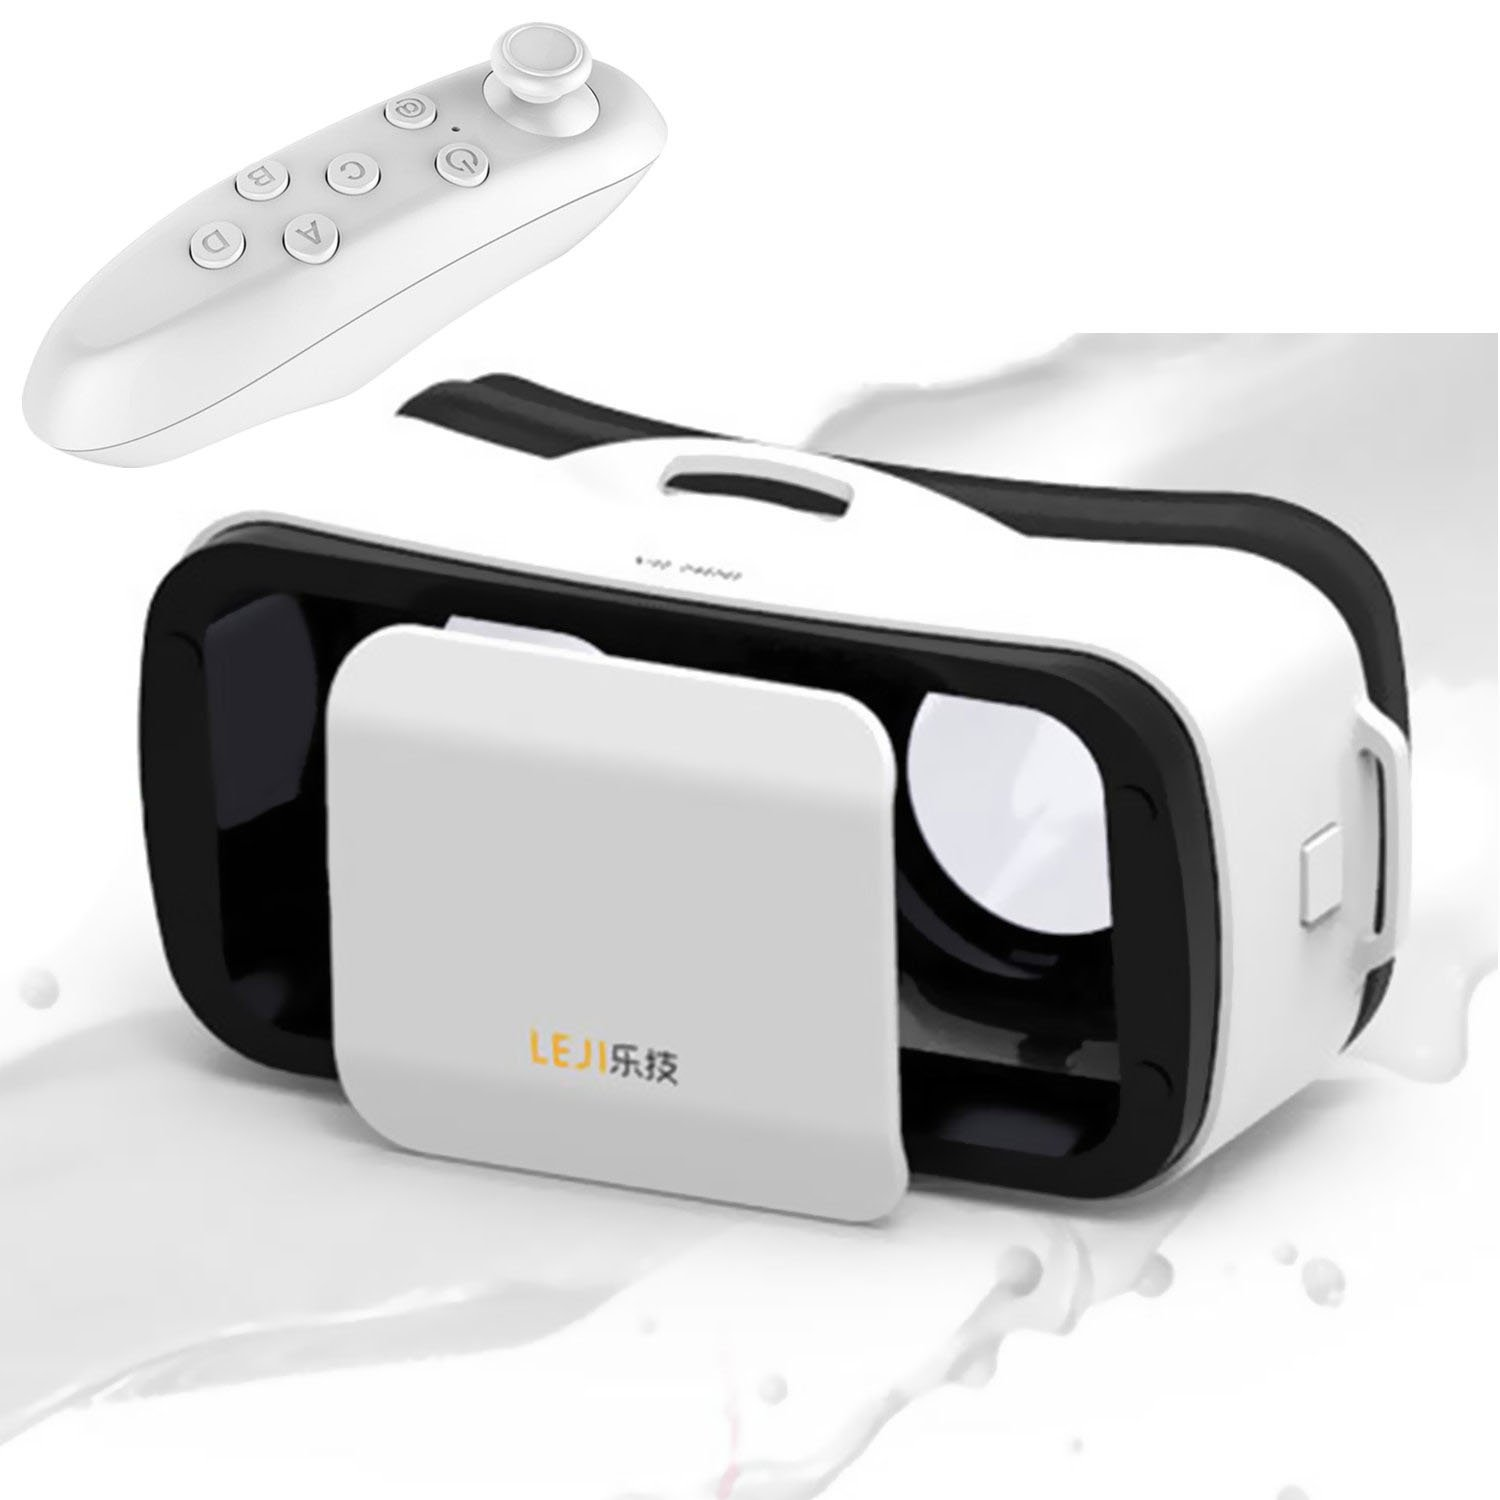 Mini 3D VR Glasses/Headset, Tsanglight Virtual Reality Headset + Remote Controller for IOS iPhone 7/6/6S Plus, Android Samsung Galaxy S7 Edge S7/6 /J7/A5/A3 2016 & Other 4.5-5.5'' Cellphone - White